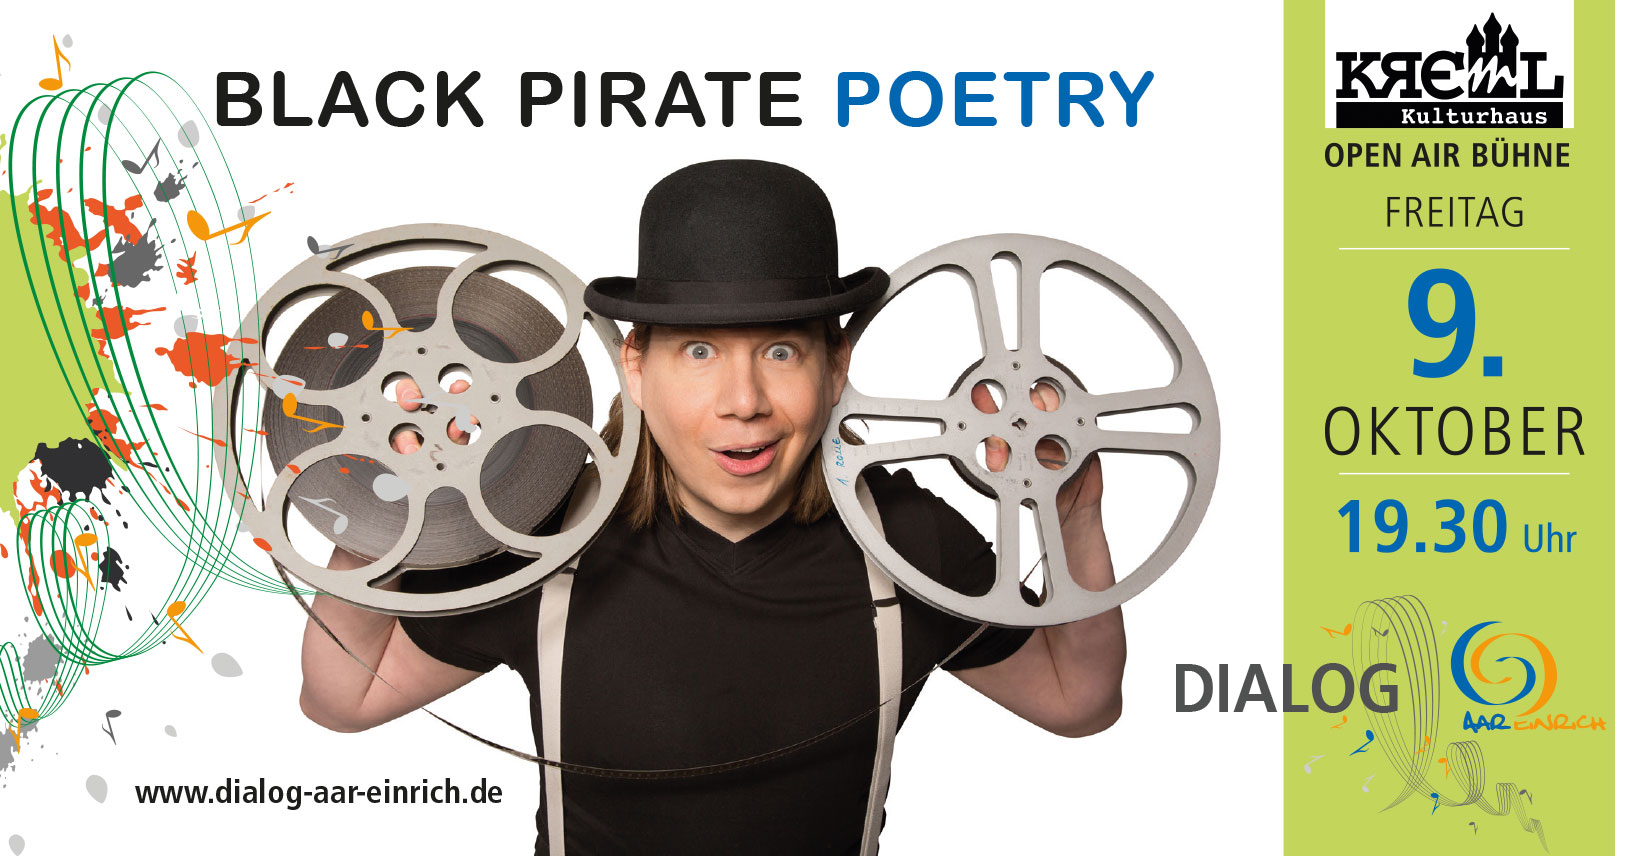 Black Pirate Poetry